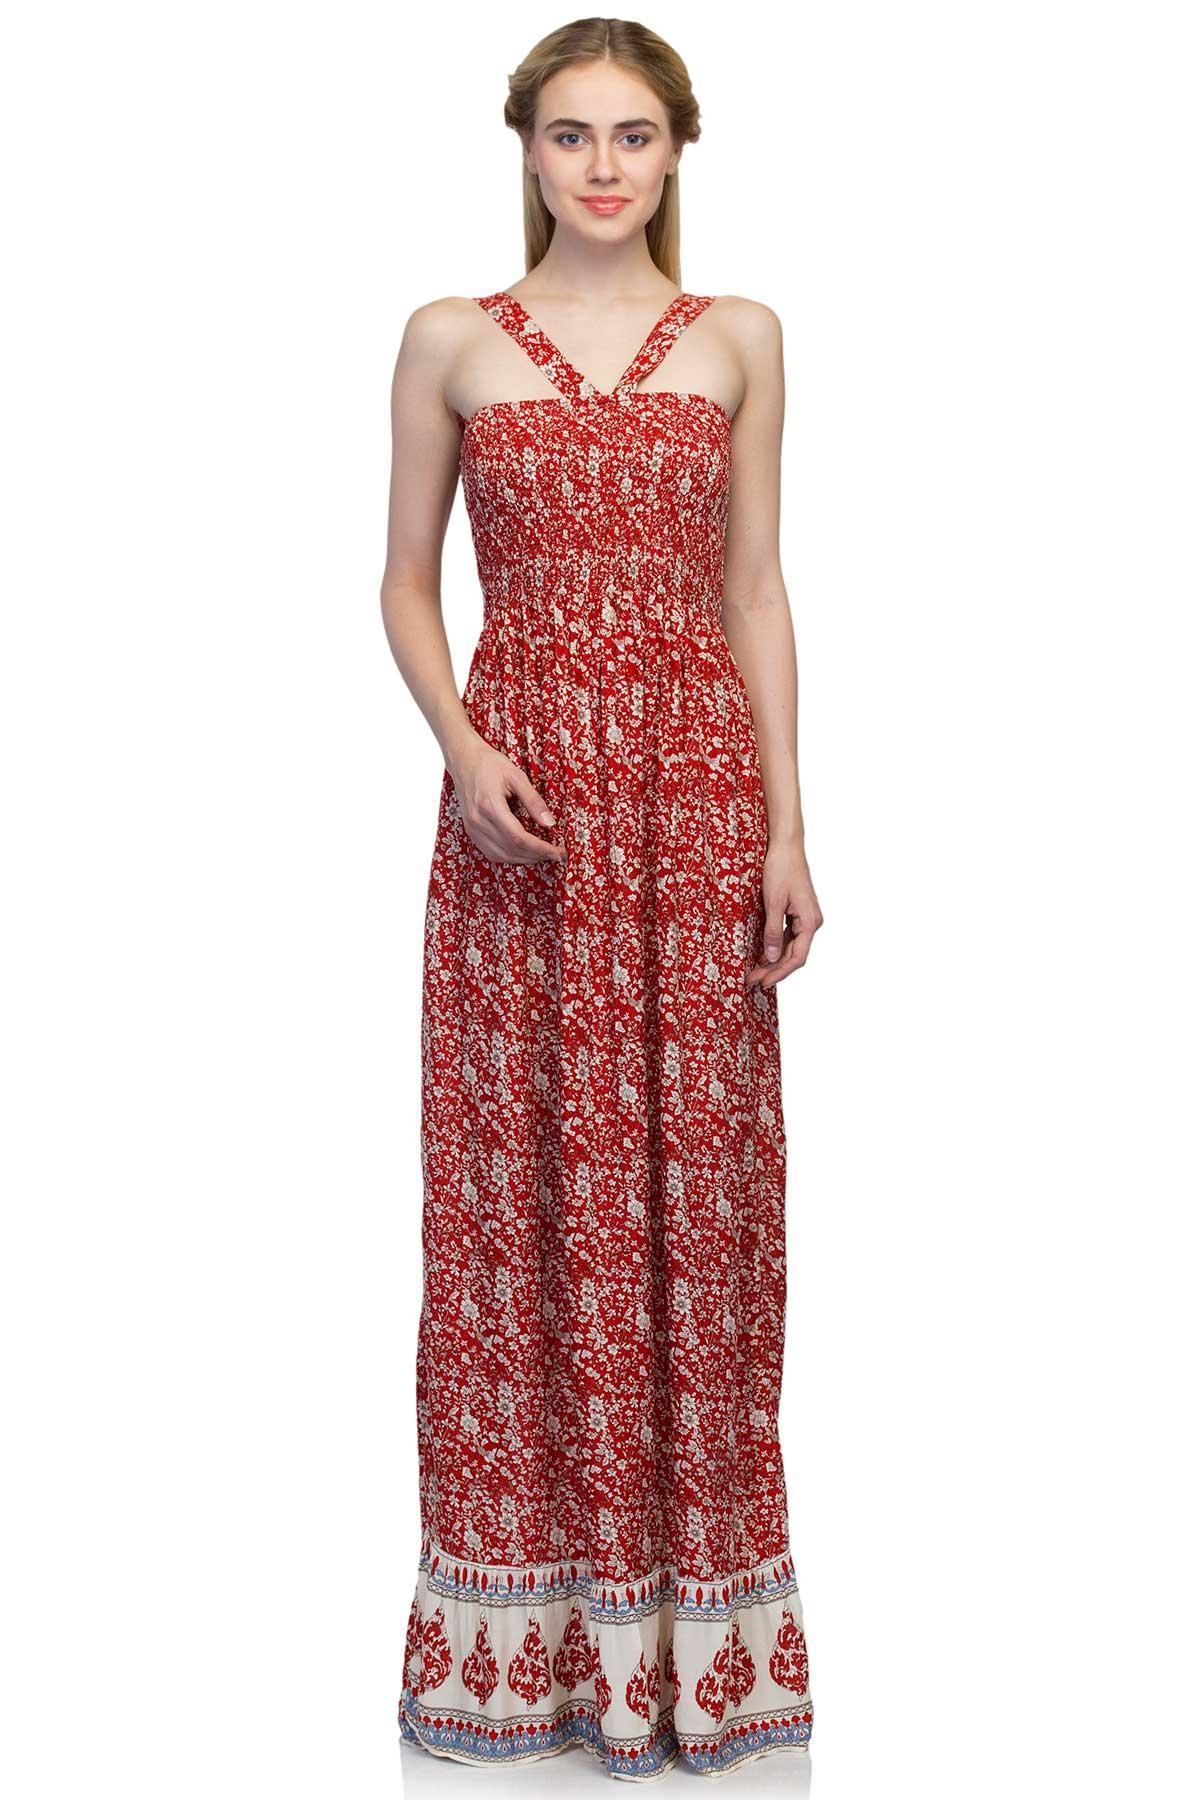 5ca2497bcc3 Red   White Long Tube Dress by Atmosphere for rent online